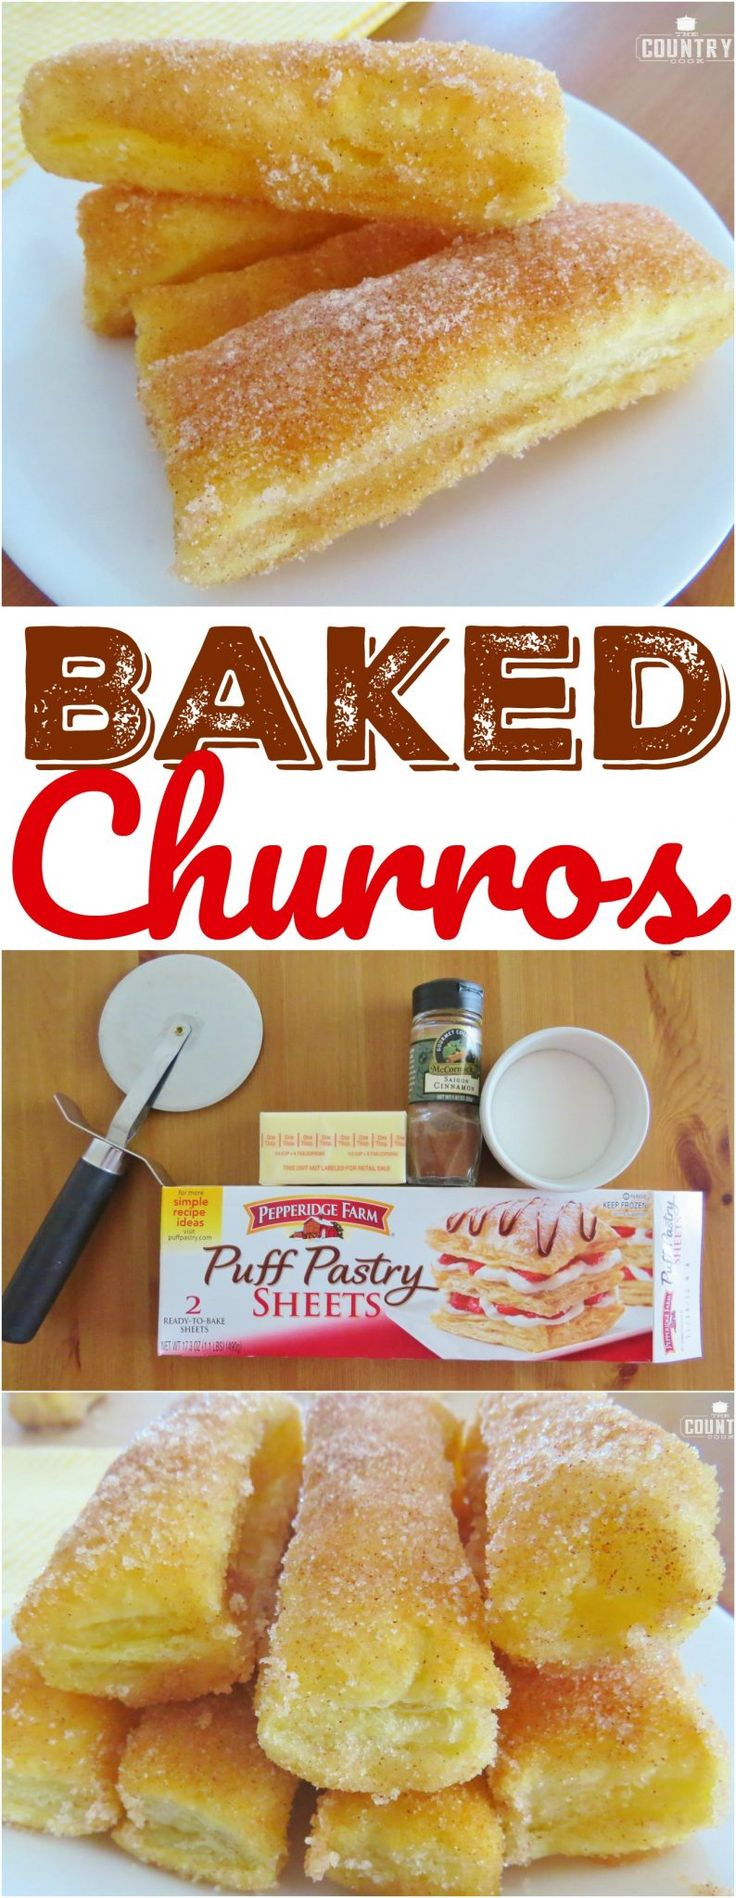 Easy Baked Churros recipe from The Country Cook. No oil. No frying. No messy dough!